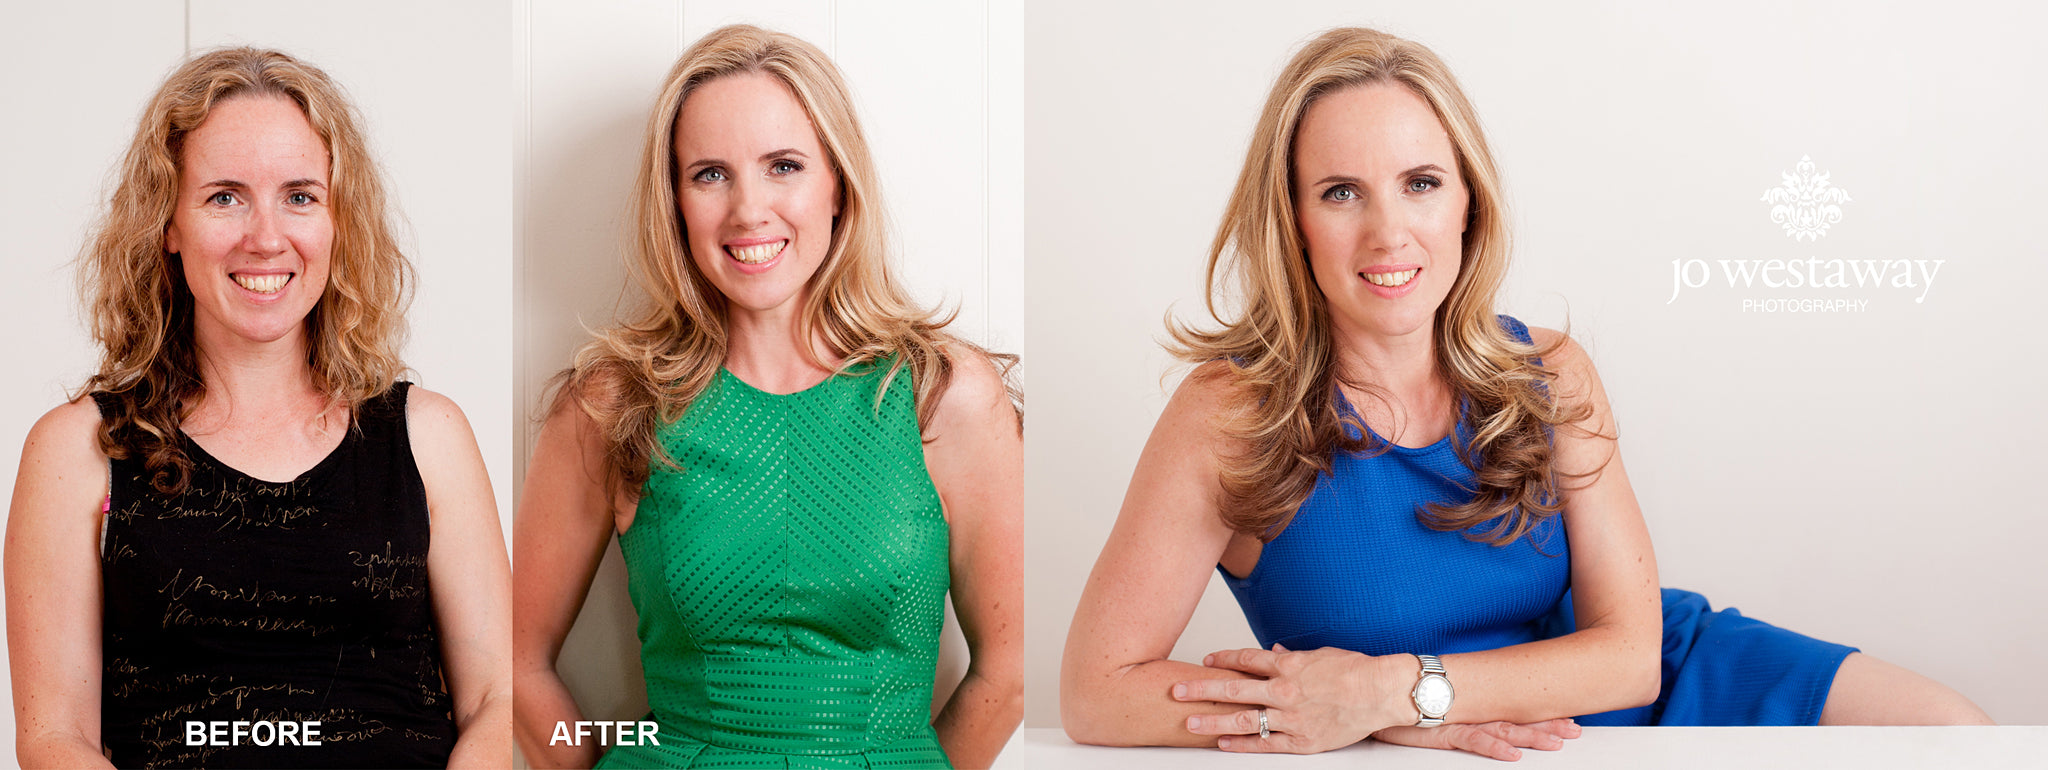 Before and after photography session - non business headshots and personal brand shots